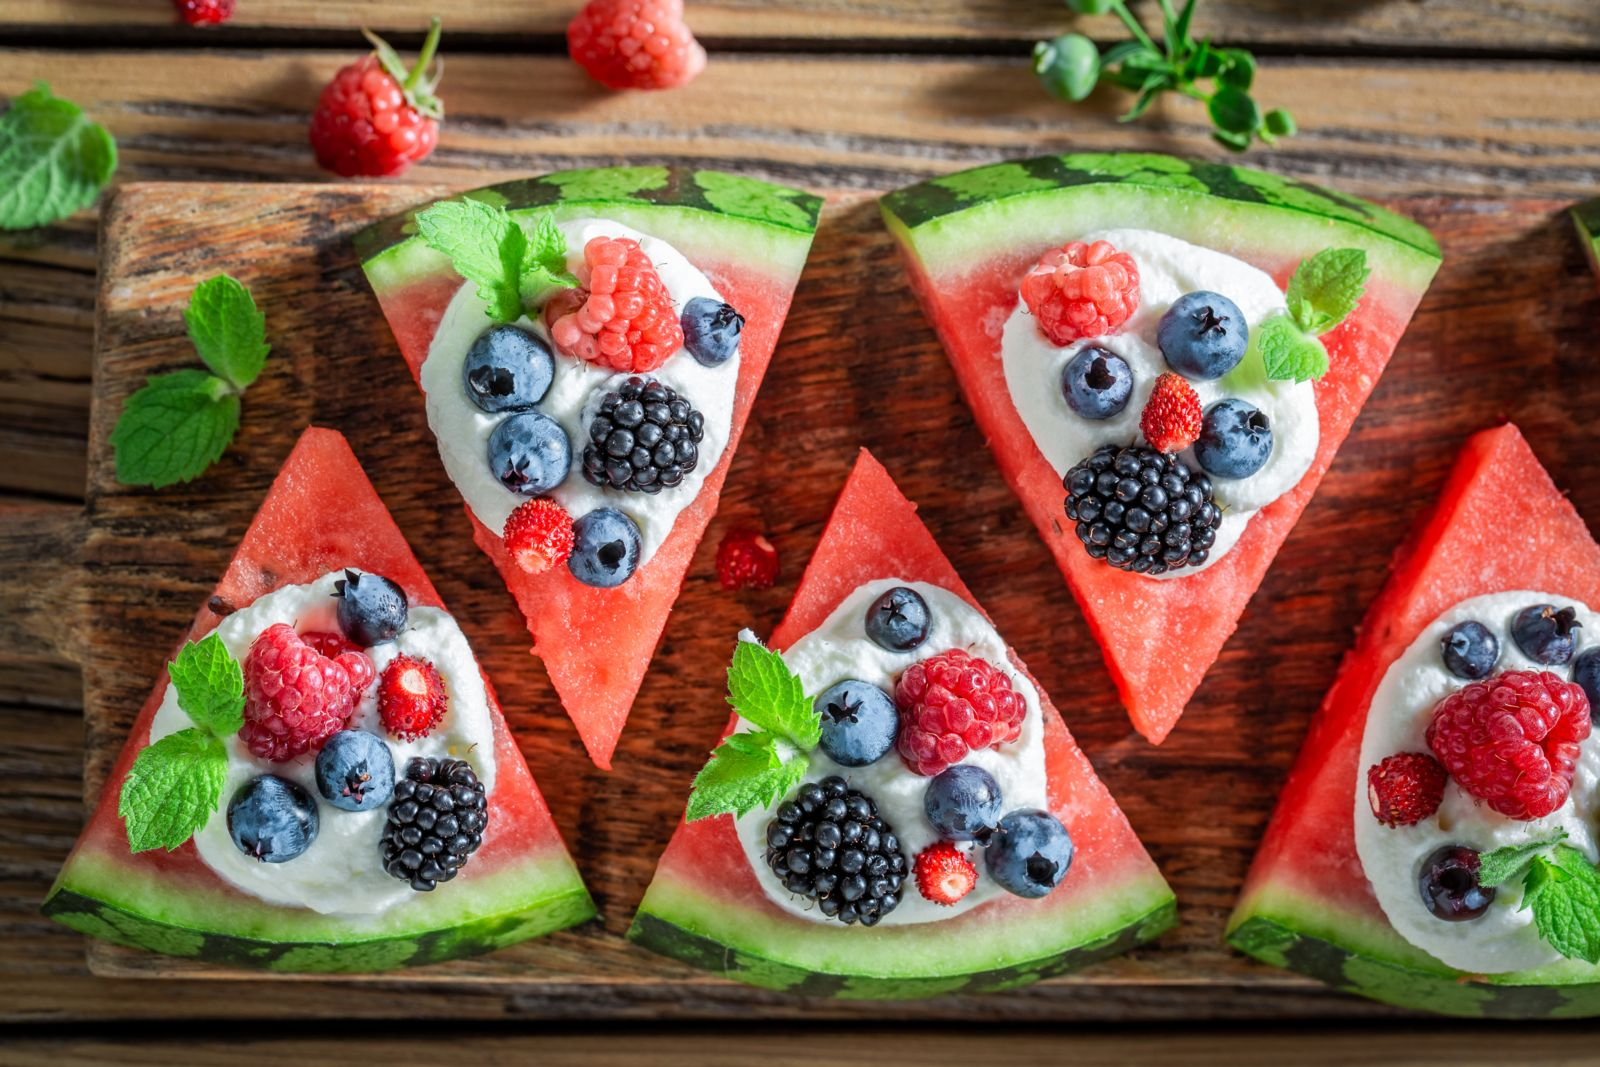 Be part of the Facebook recipe craze with this diabetes-friendly Watermelon Pizza